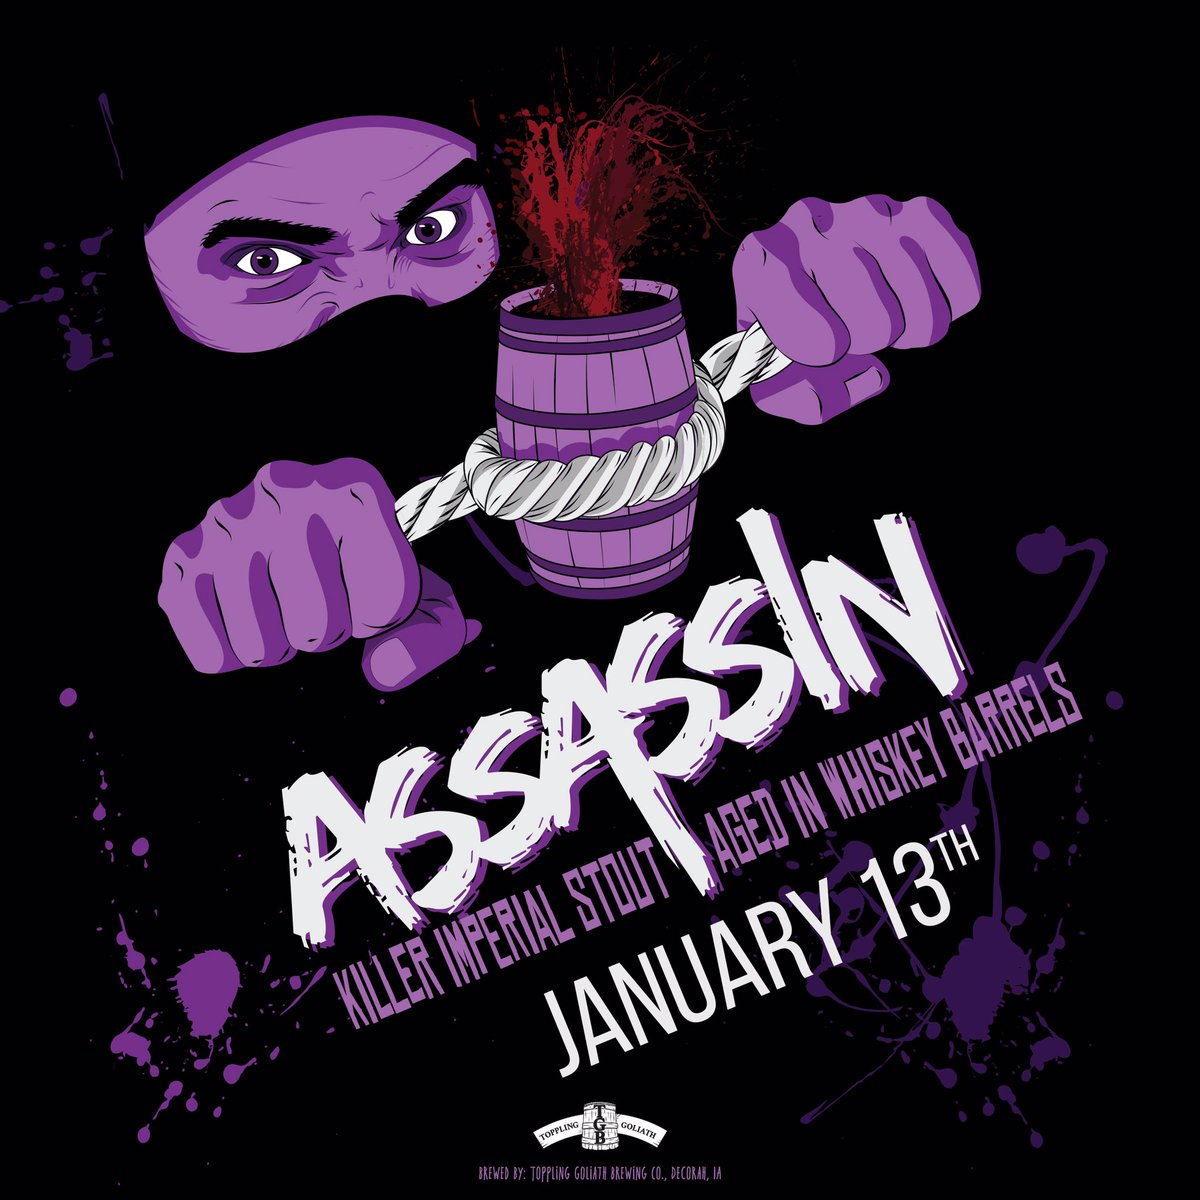 Details are being finalized, Assassin is coming for you! https://t.co/G7L9iD6Wwc